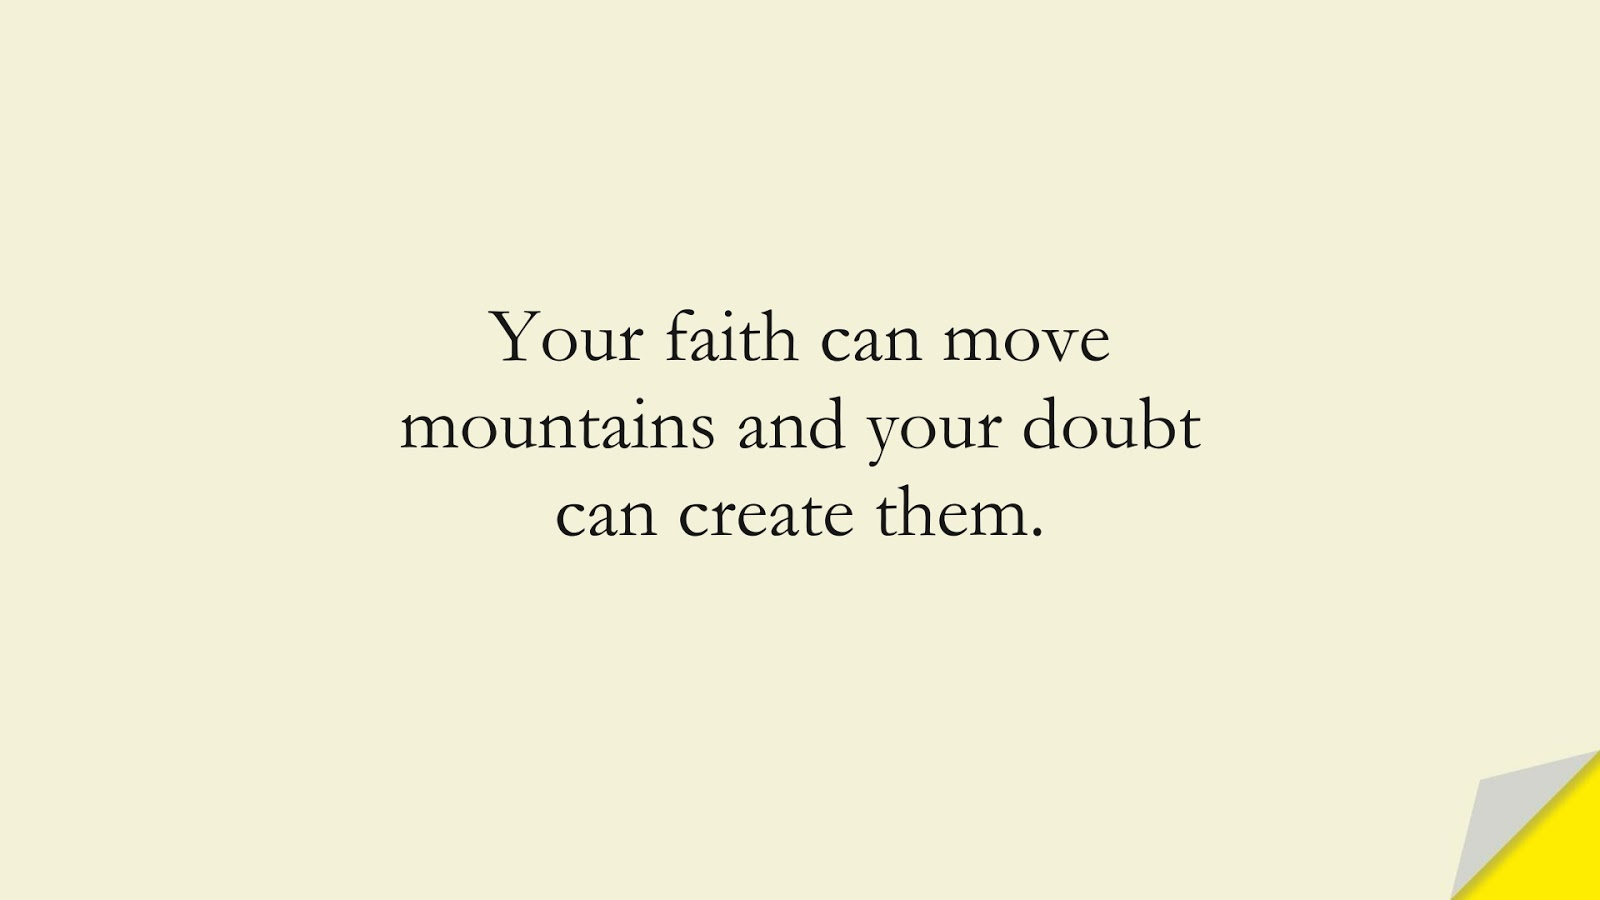 Your faith can move mountains and your doubt can create them.FALSE